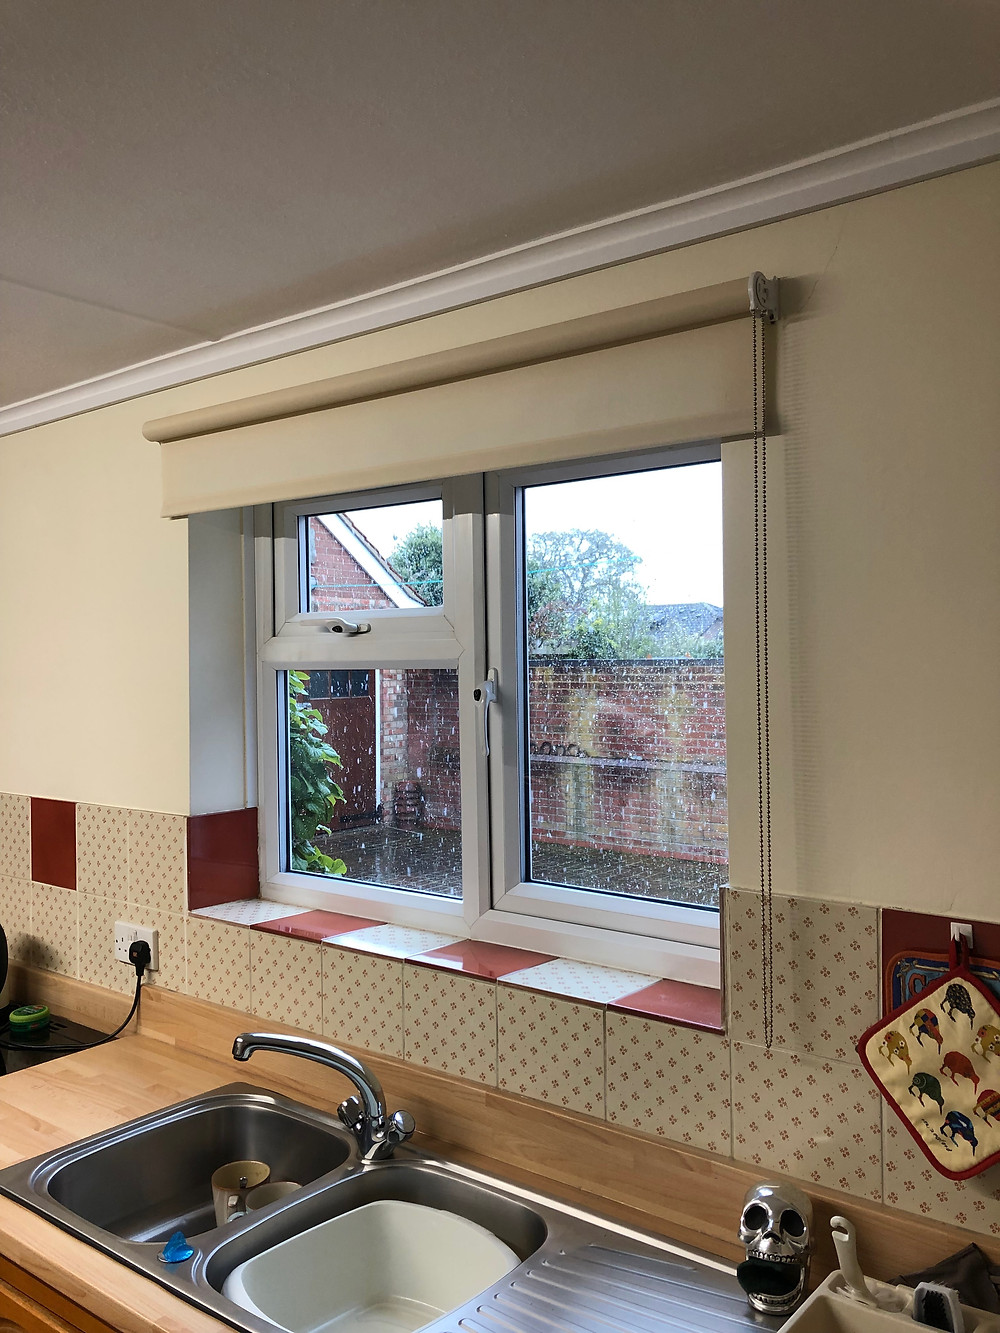 A close up of the right roller blind